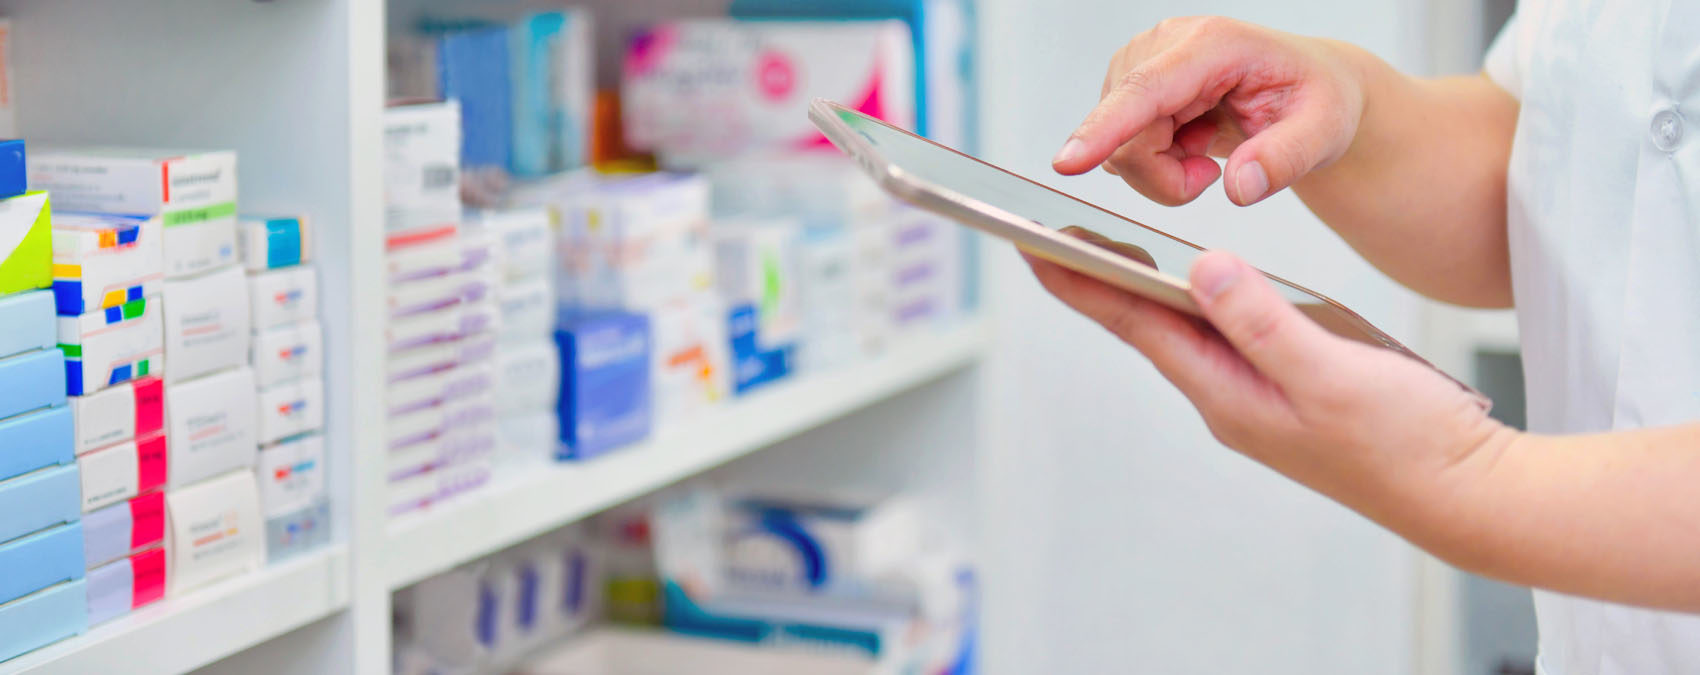 How a New Jersey Pharmacy Used Curbside Pickup to Keep Doors Open during COVID-19